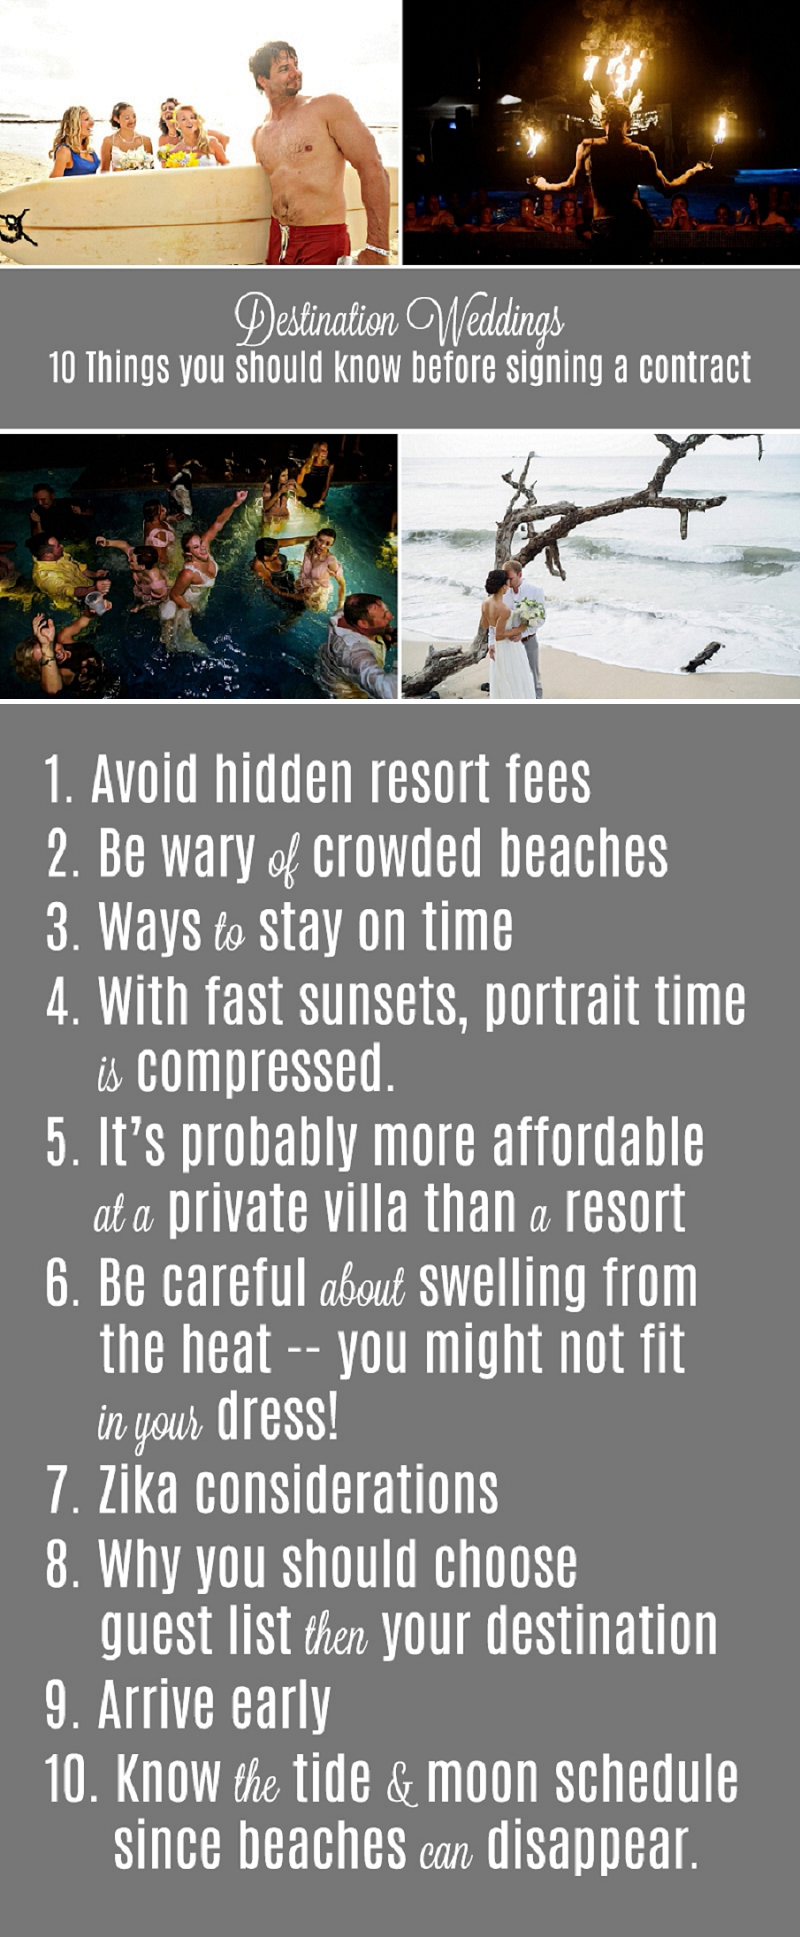 destination wedding 10 things you should know before signing a contract